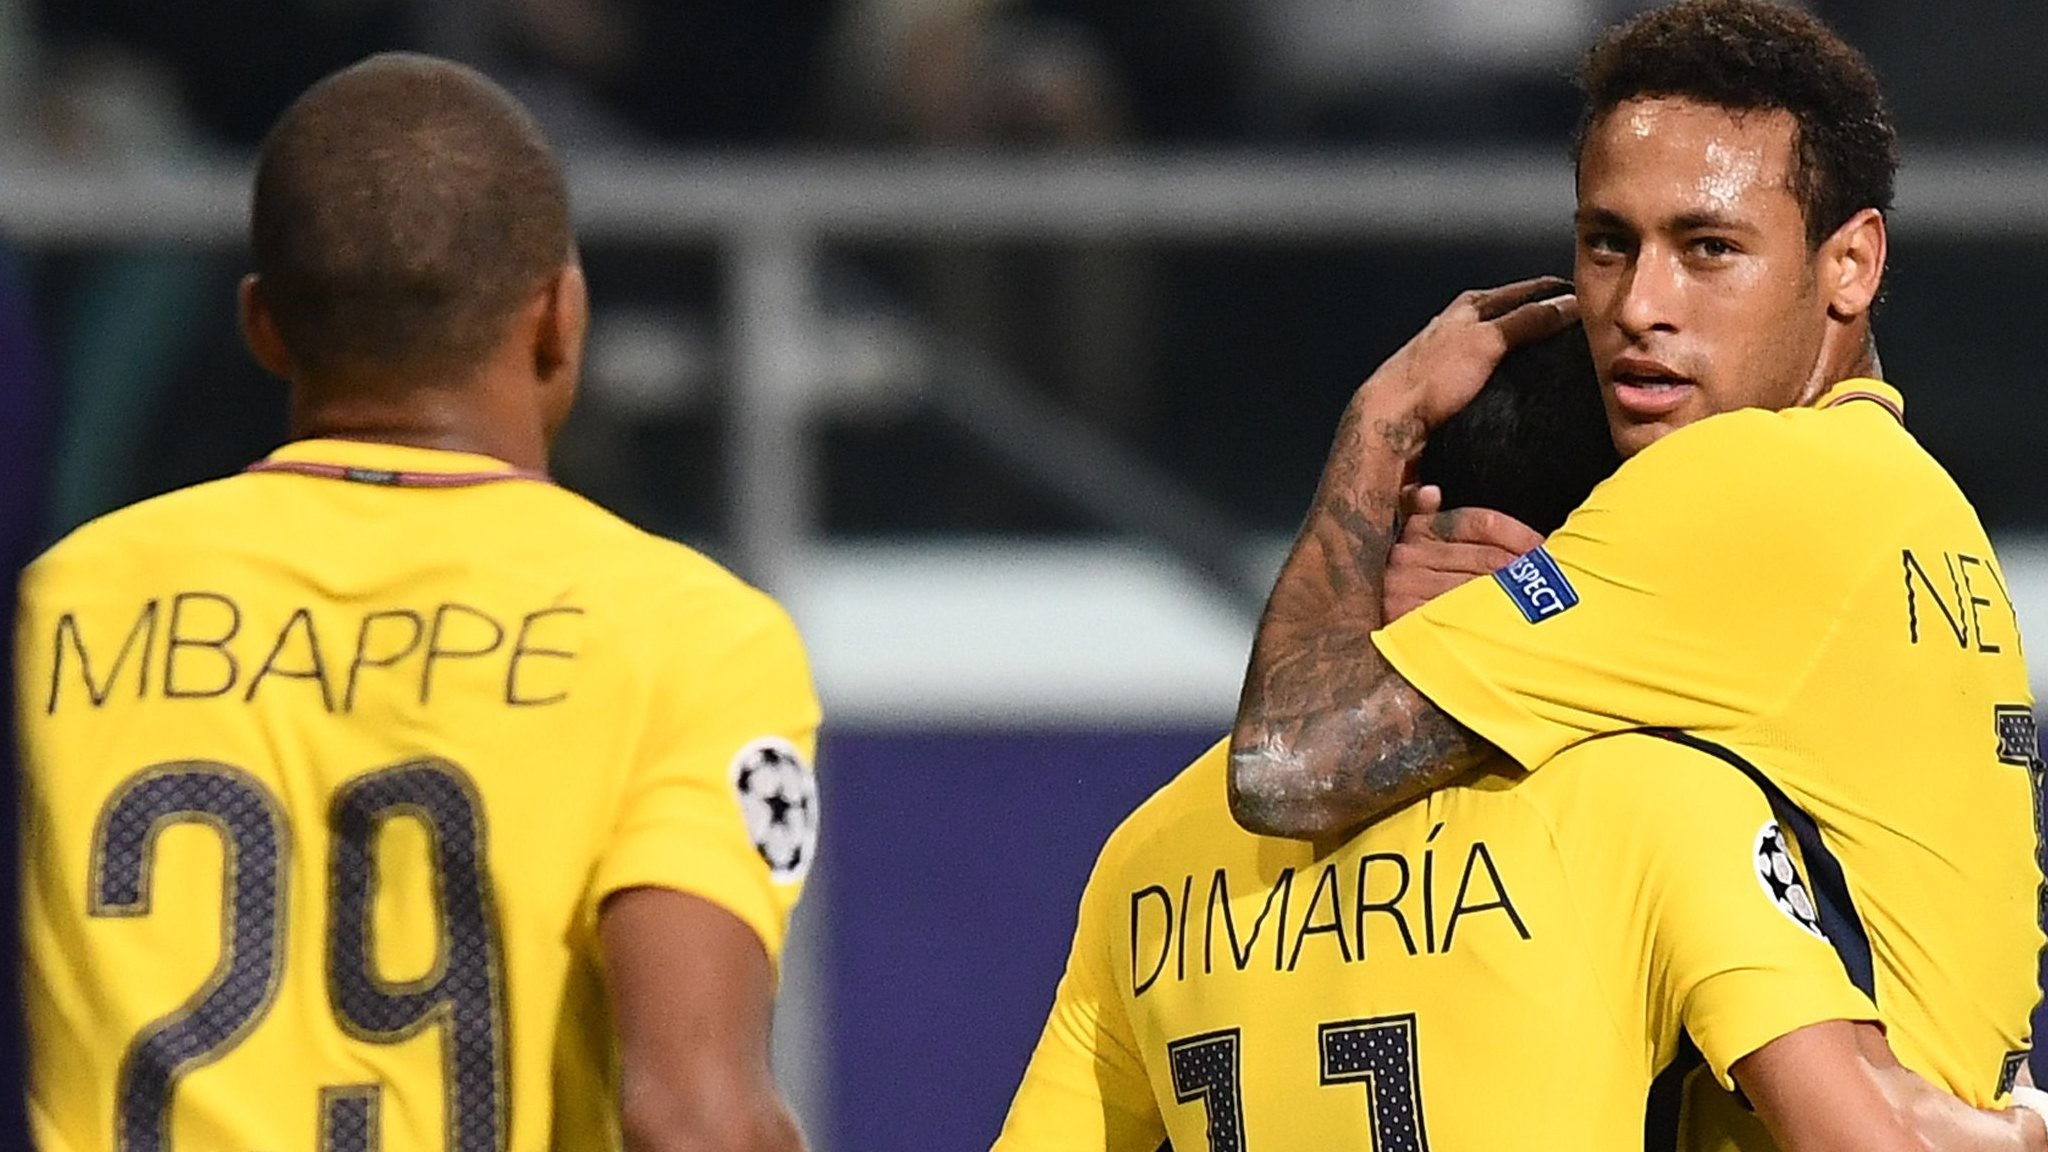 Neymar, Mbappe & Cavani all score as PSG maintain 100% start